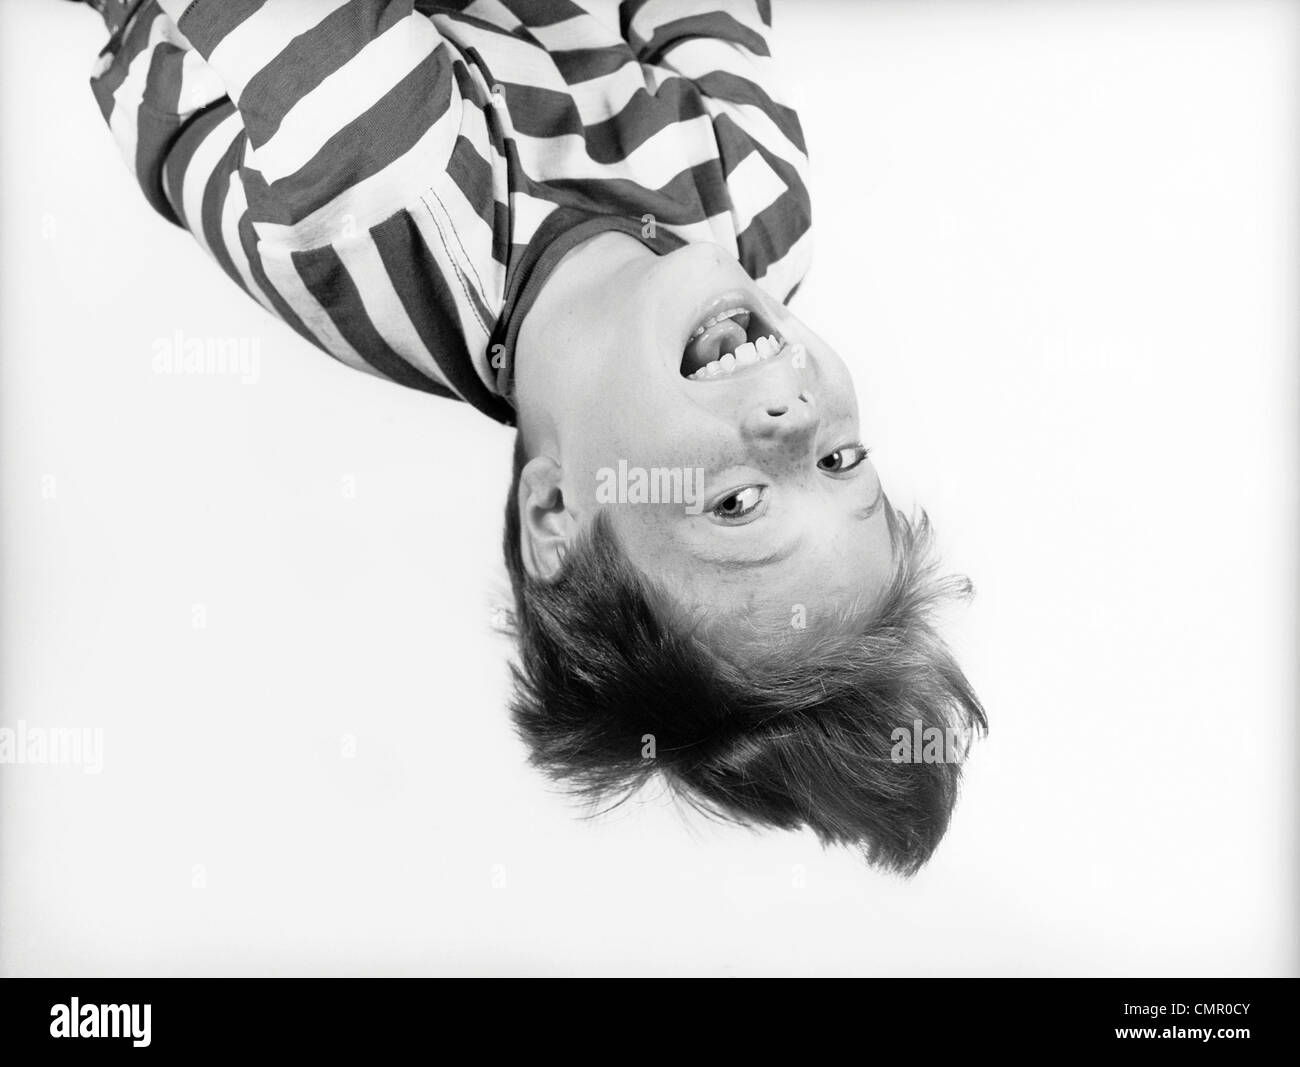 1950s BOY IN STRIPED T-SHIRT HANGING UPSIDE-DOWN - Stock Image